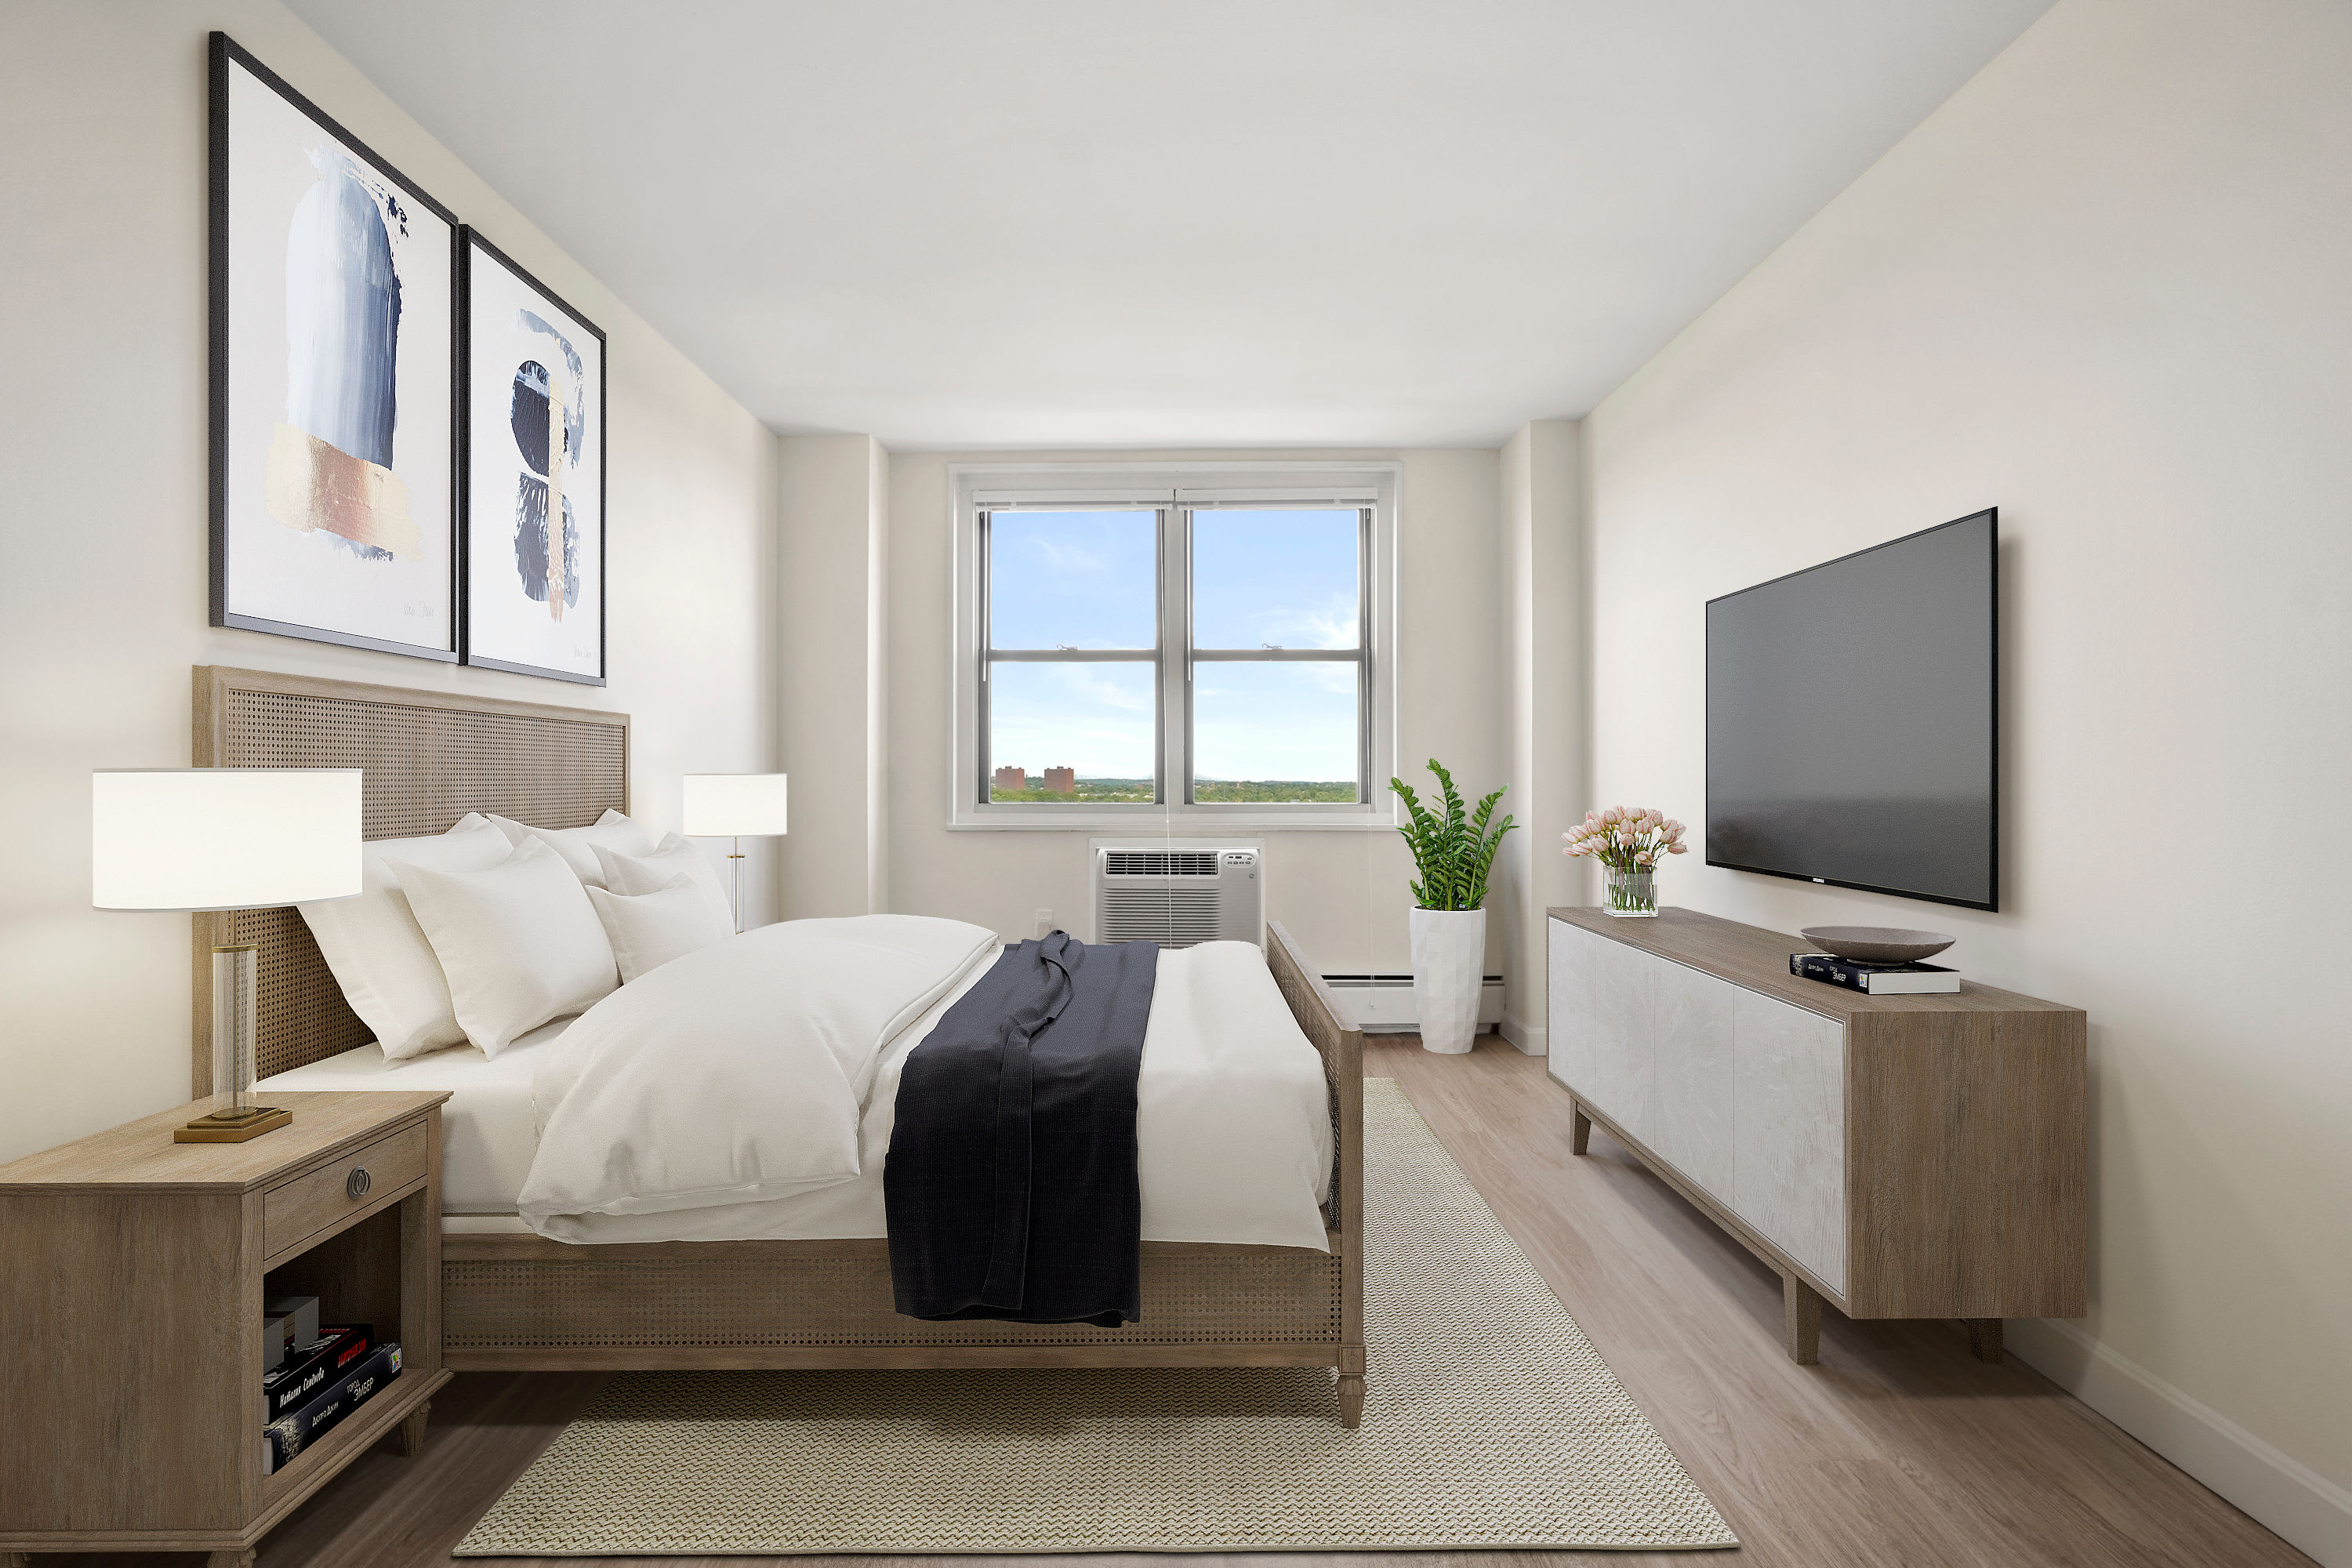 Stylish bedroom at Parkside Place in Cambridge, MA